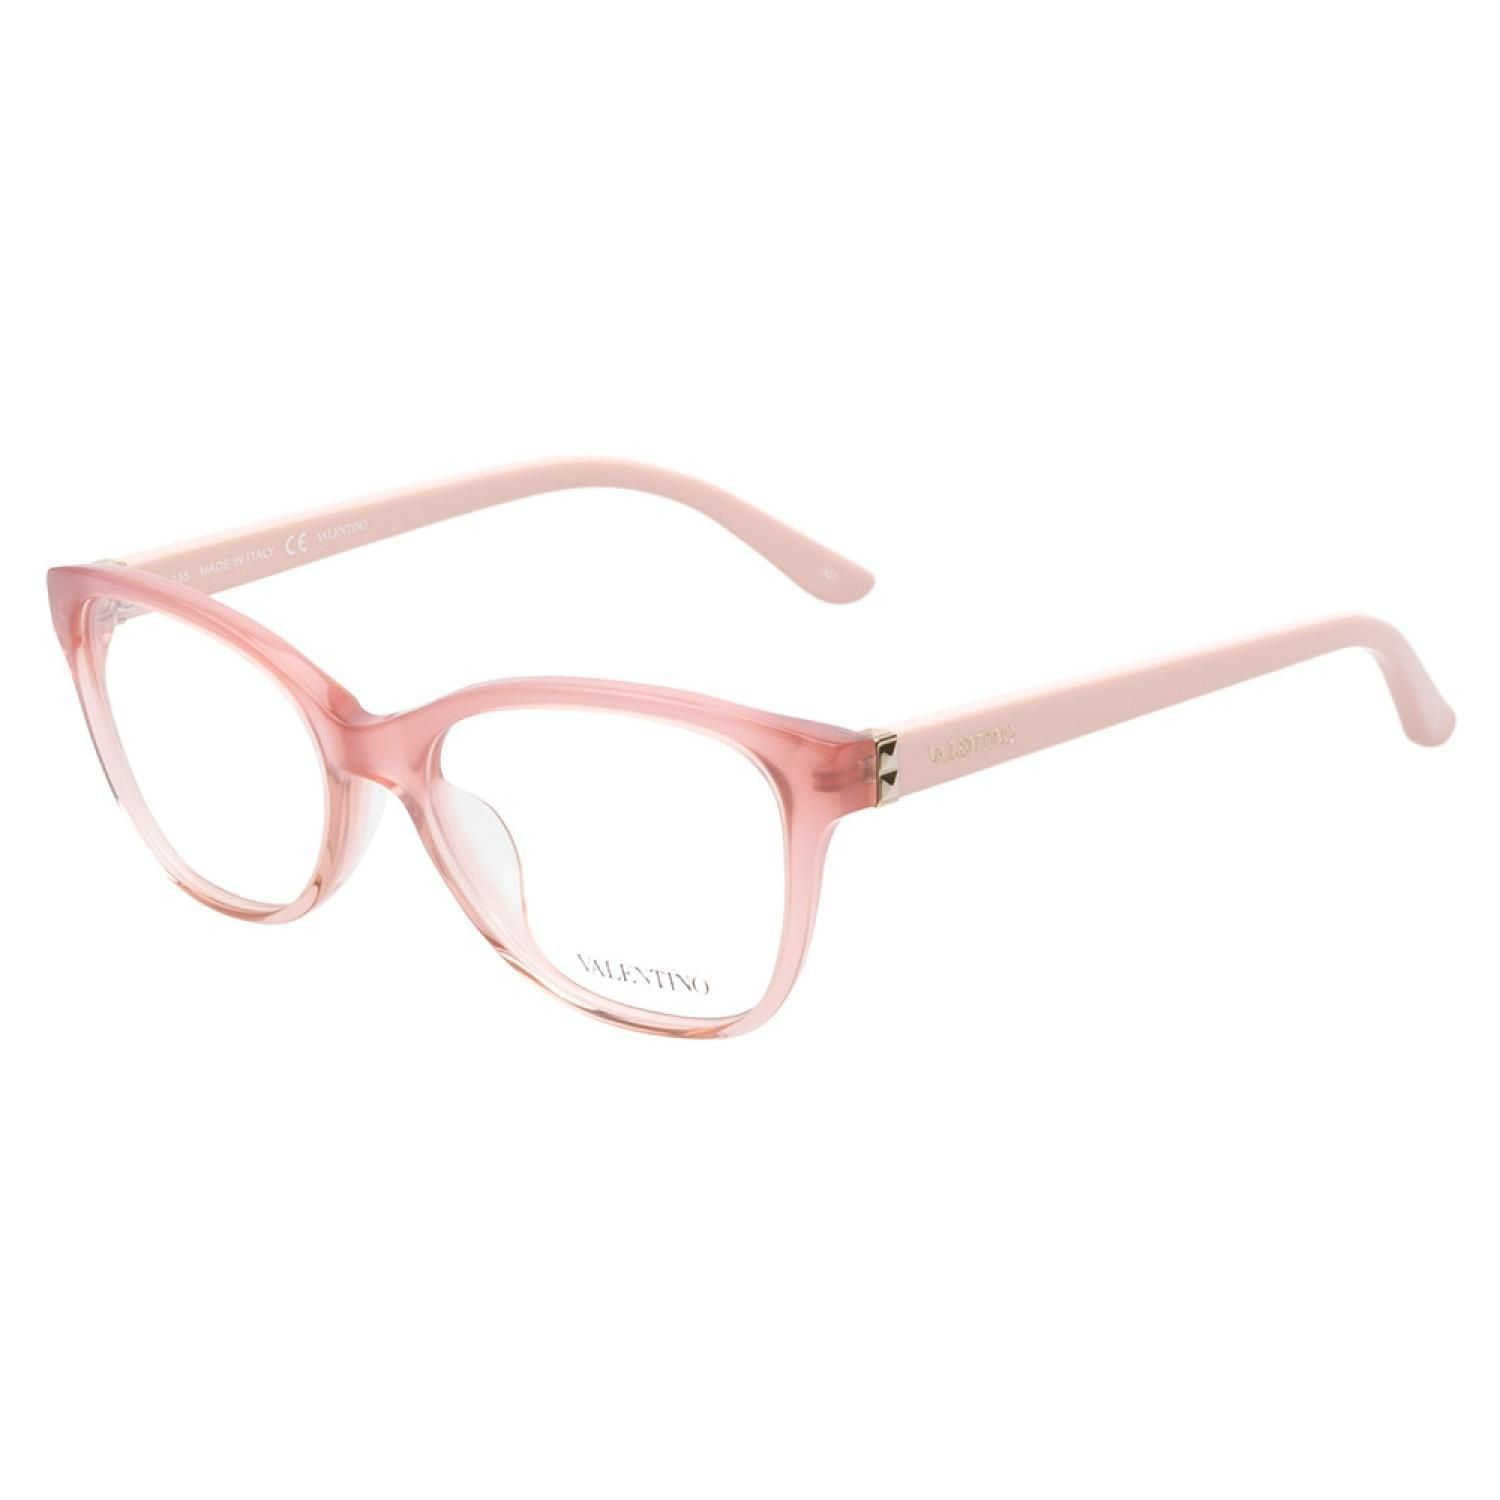 2b171647d9 Valentino V2642 601 Rose eyeglasses are delicately enchanting. This poised  cateye style comes in a pretty rose hue with a semi-transparent acetate  frame ...